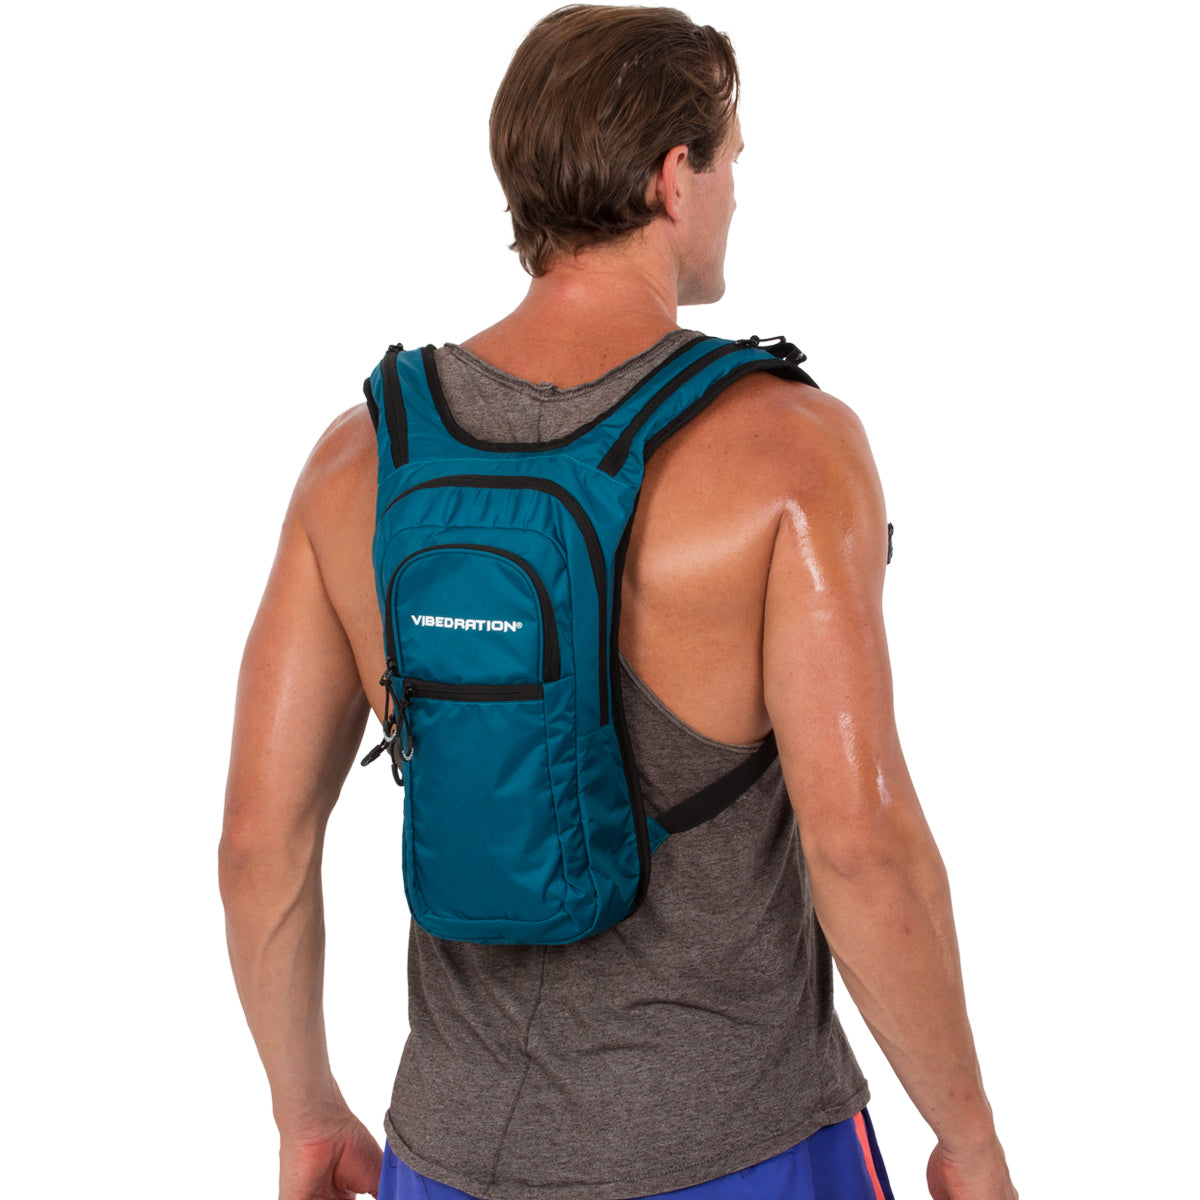 Side view of male wearing dark blue nylon hydration pack with three compartments.